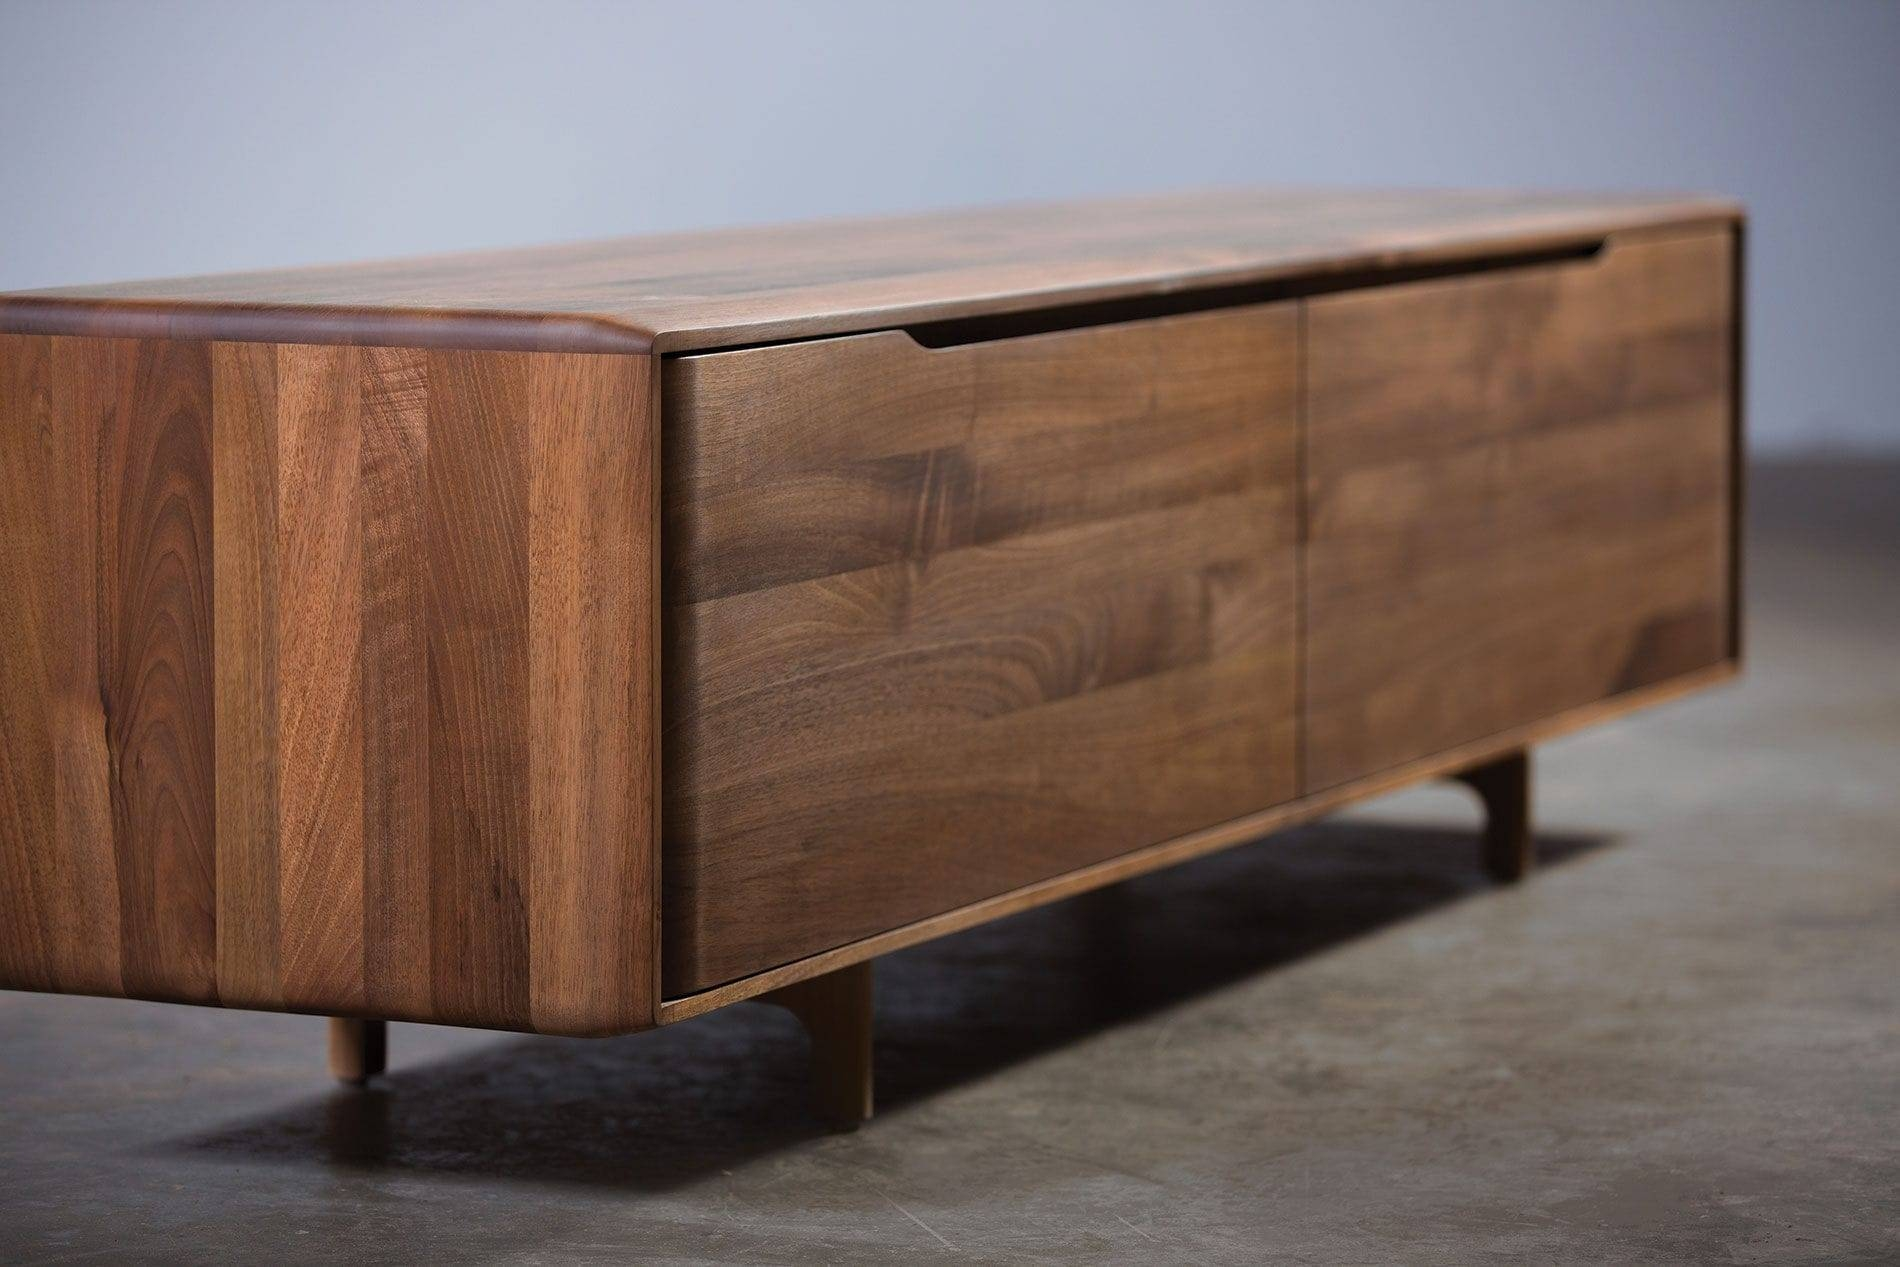 Contemporary Sideboard / Oak / Walnut / Solid Wood - Invito pertaining to Real Wood Sideboards (Image 1 of 30)